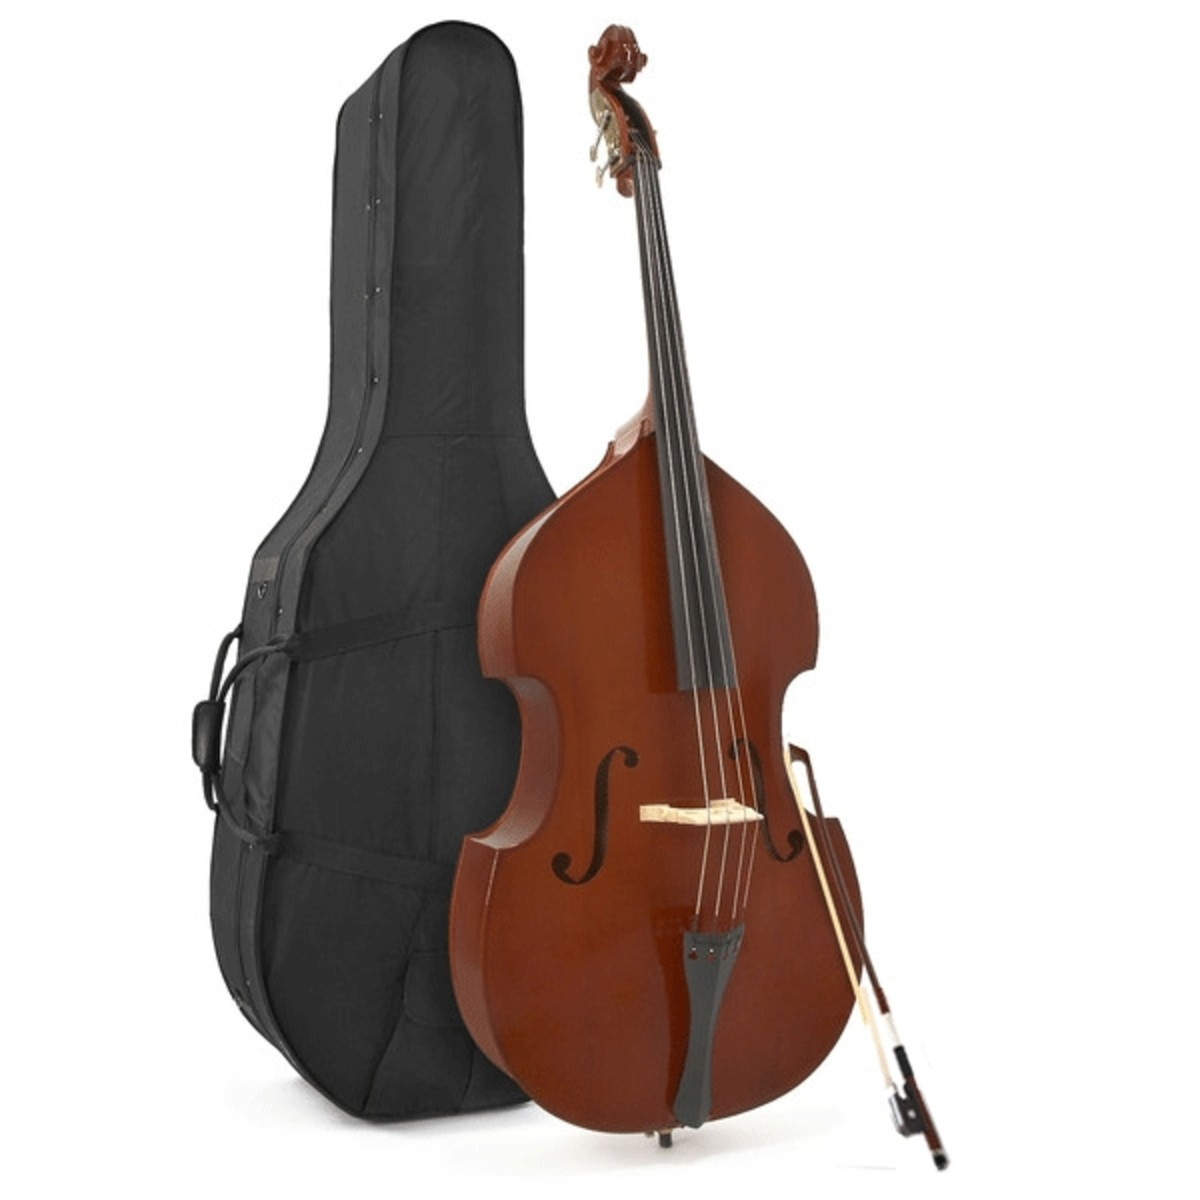 Image of Student 1/2 Double Bass by Gear4music